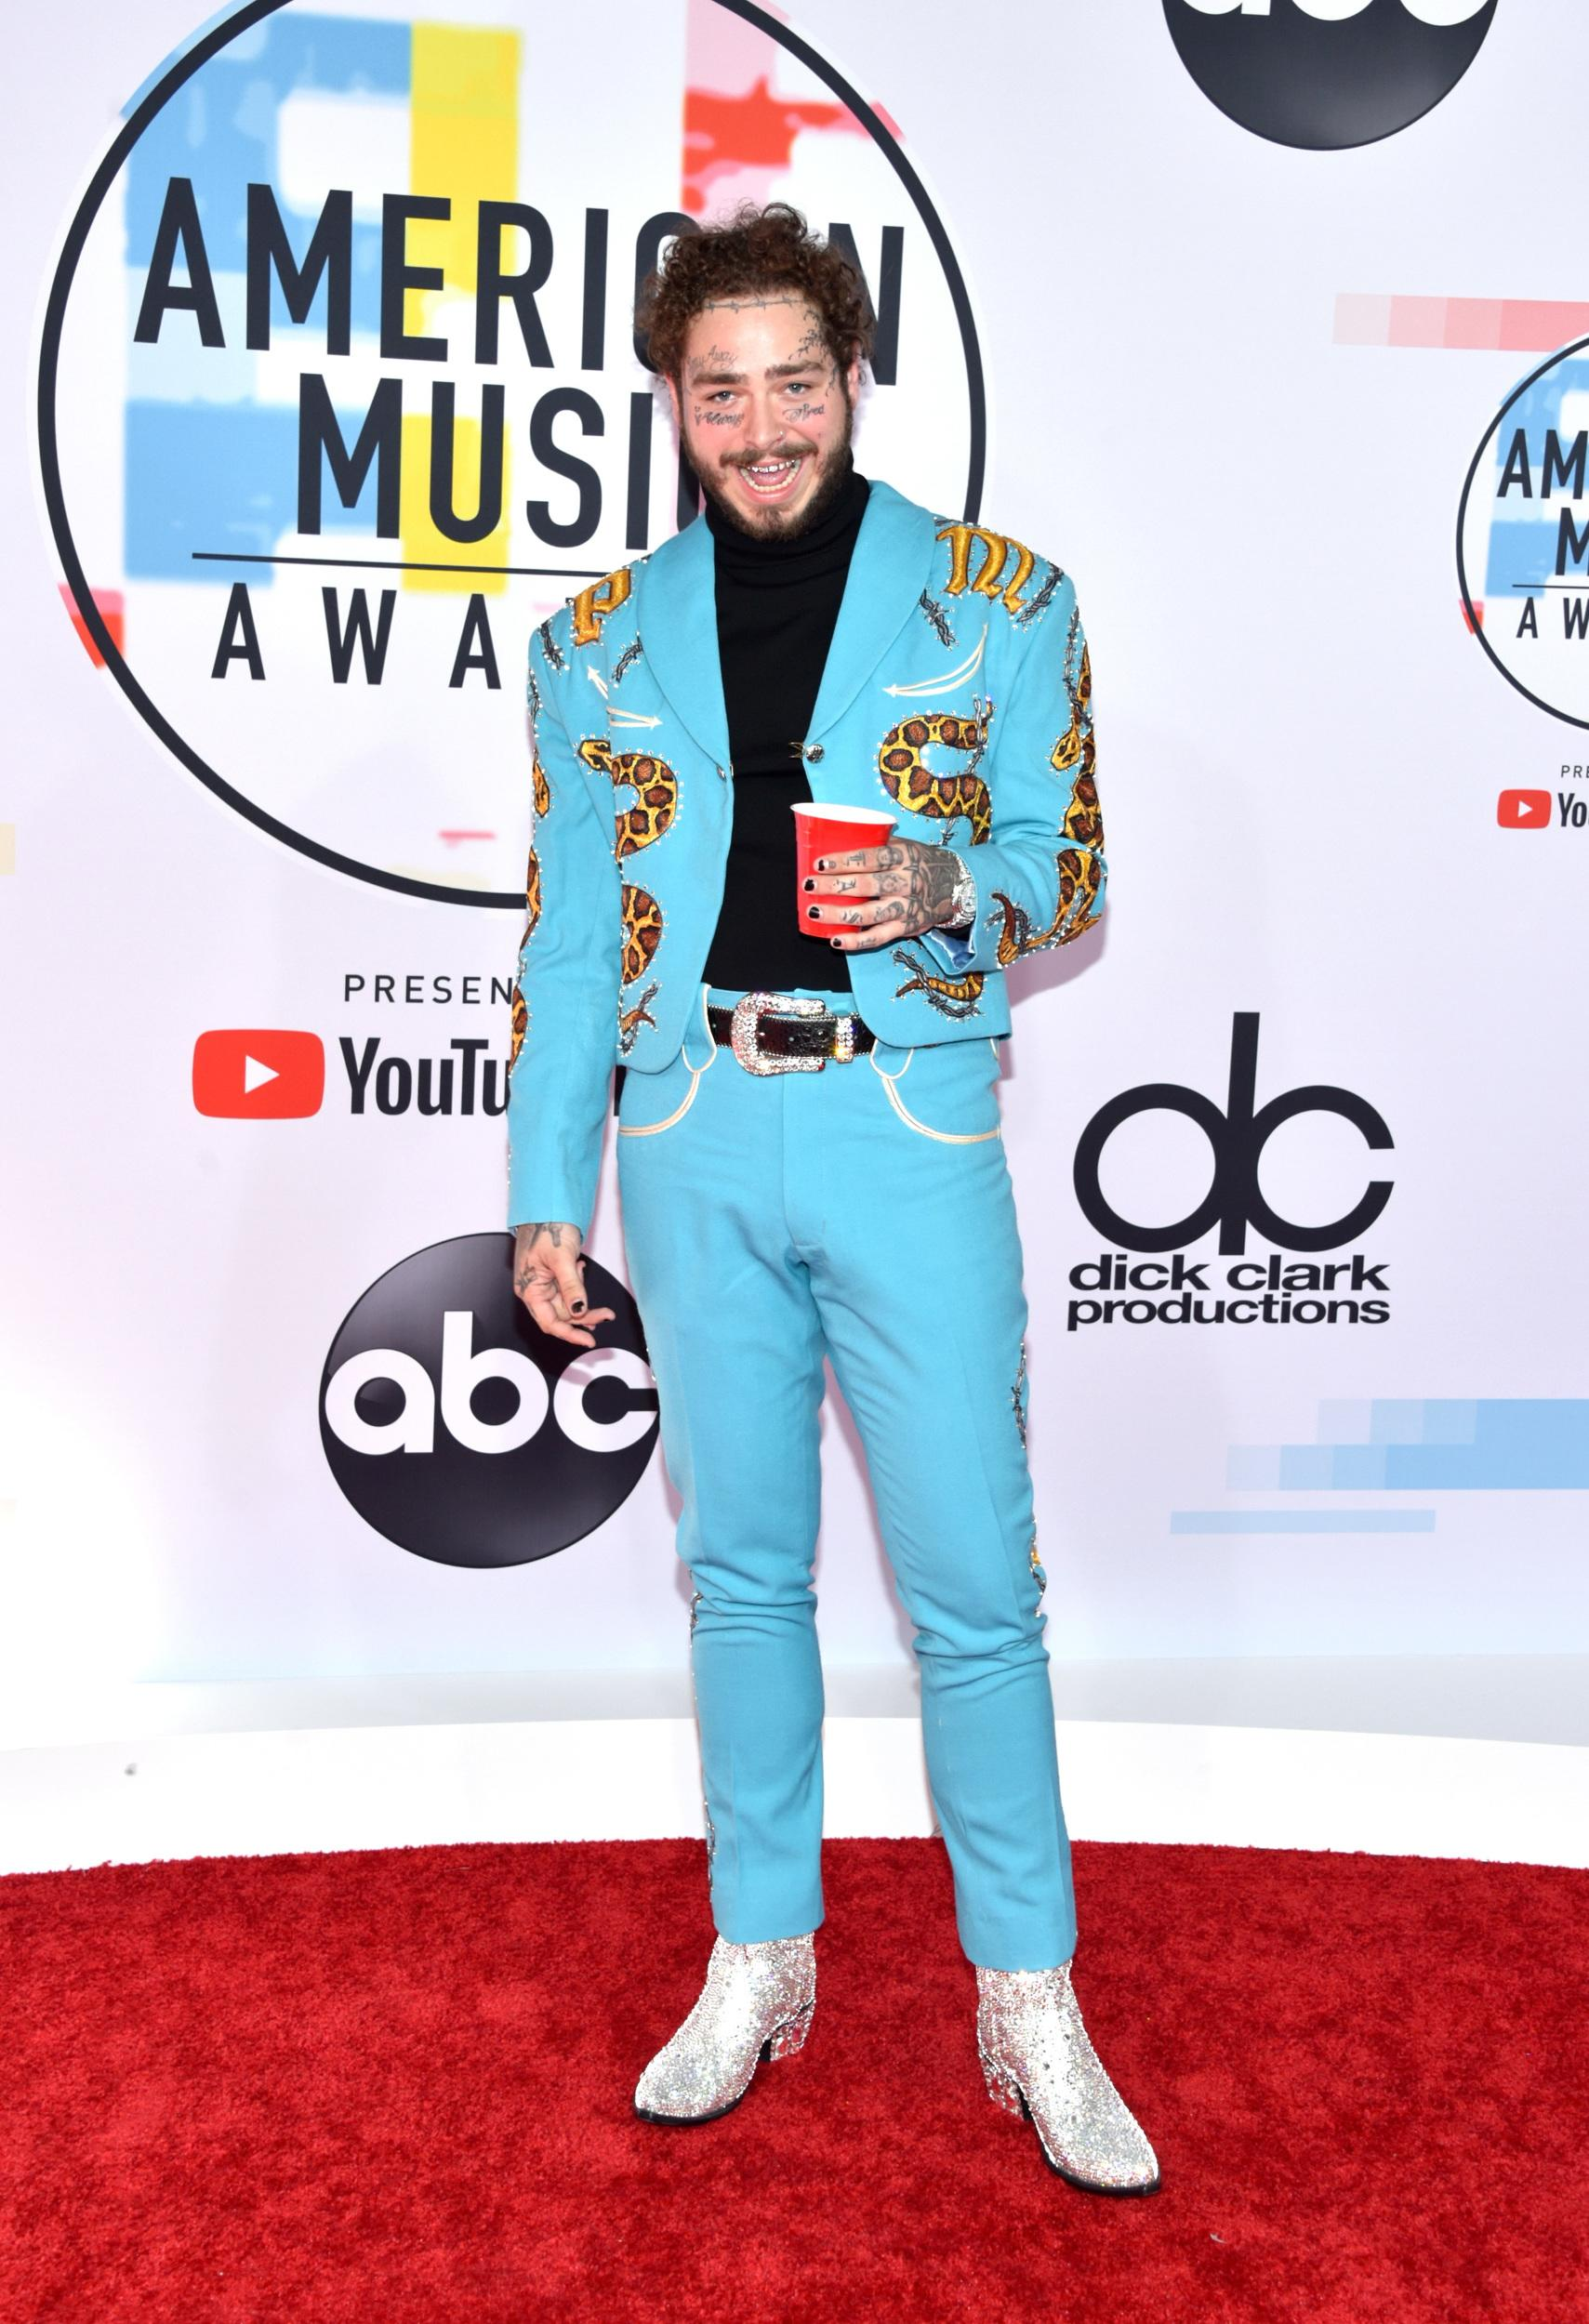 LOS ANGELES, CA - OCTOBER 09:  Post Malone attends the 2018 American Music Awards at Microsoft Theater on October 9, 2018 in Los Angeles, California.  (Photo by John Shearer/Getty Images For dcp)